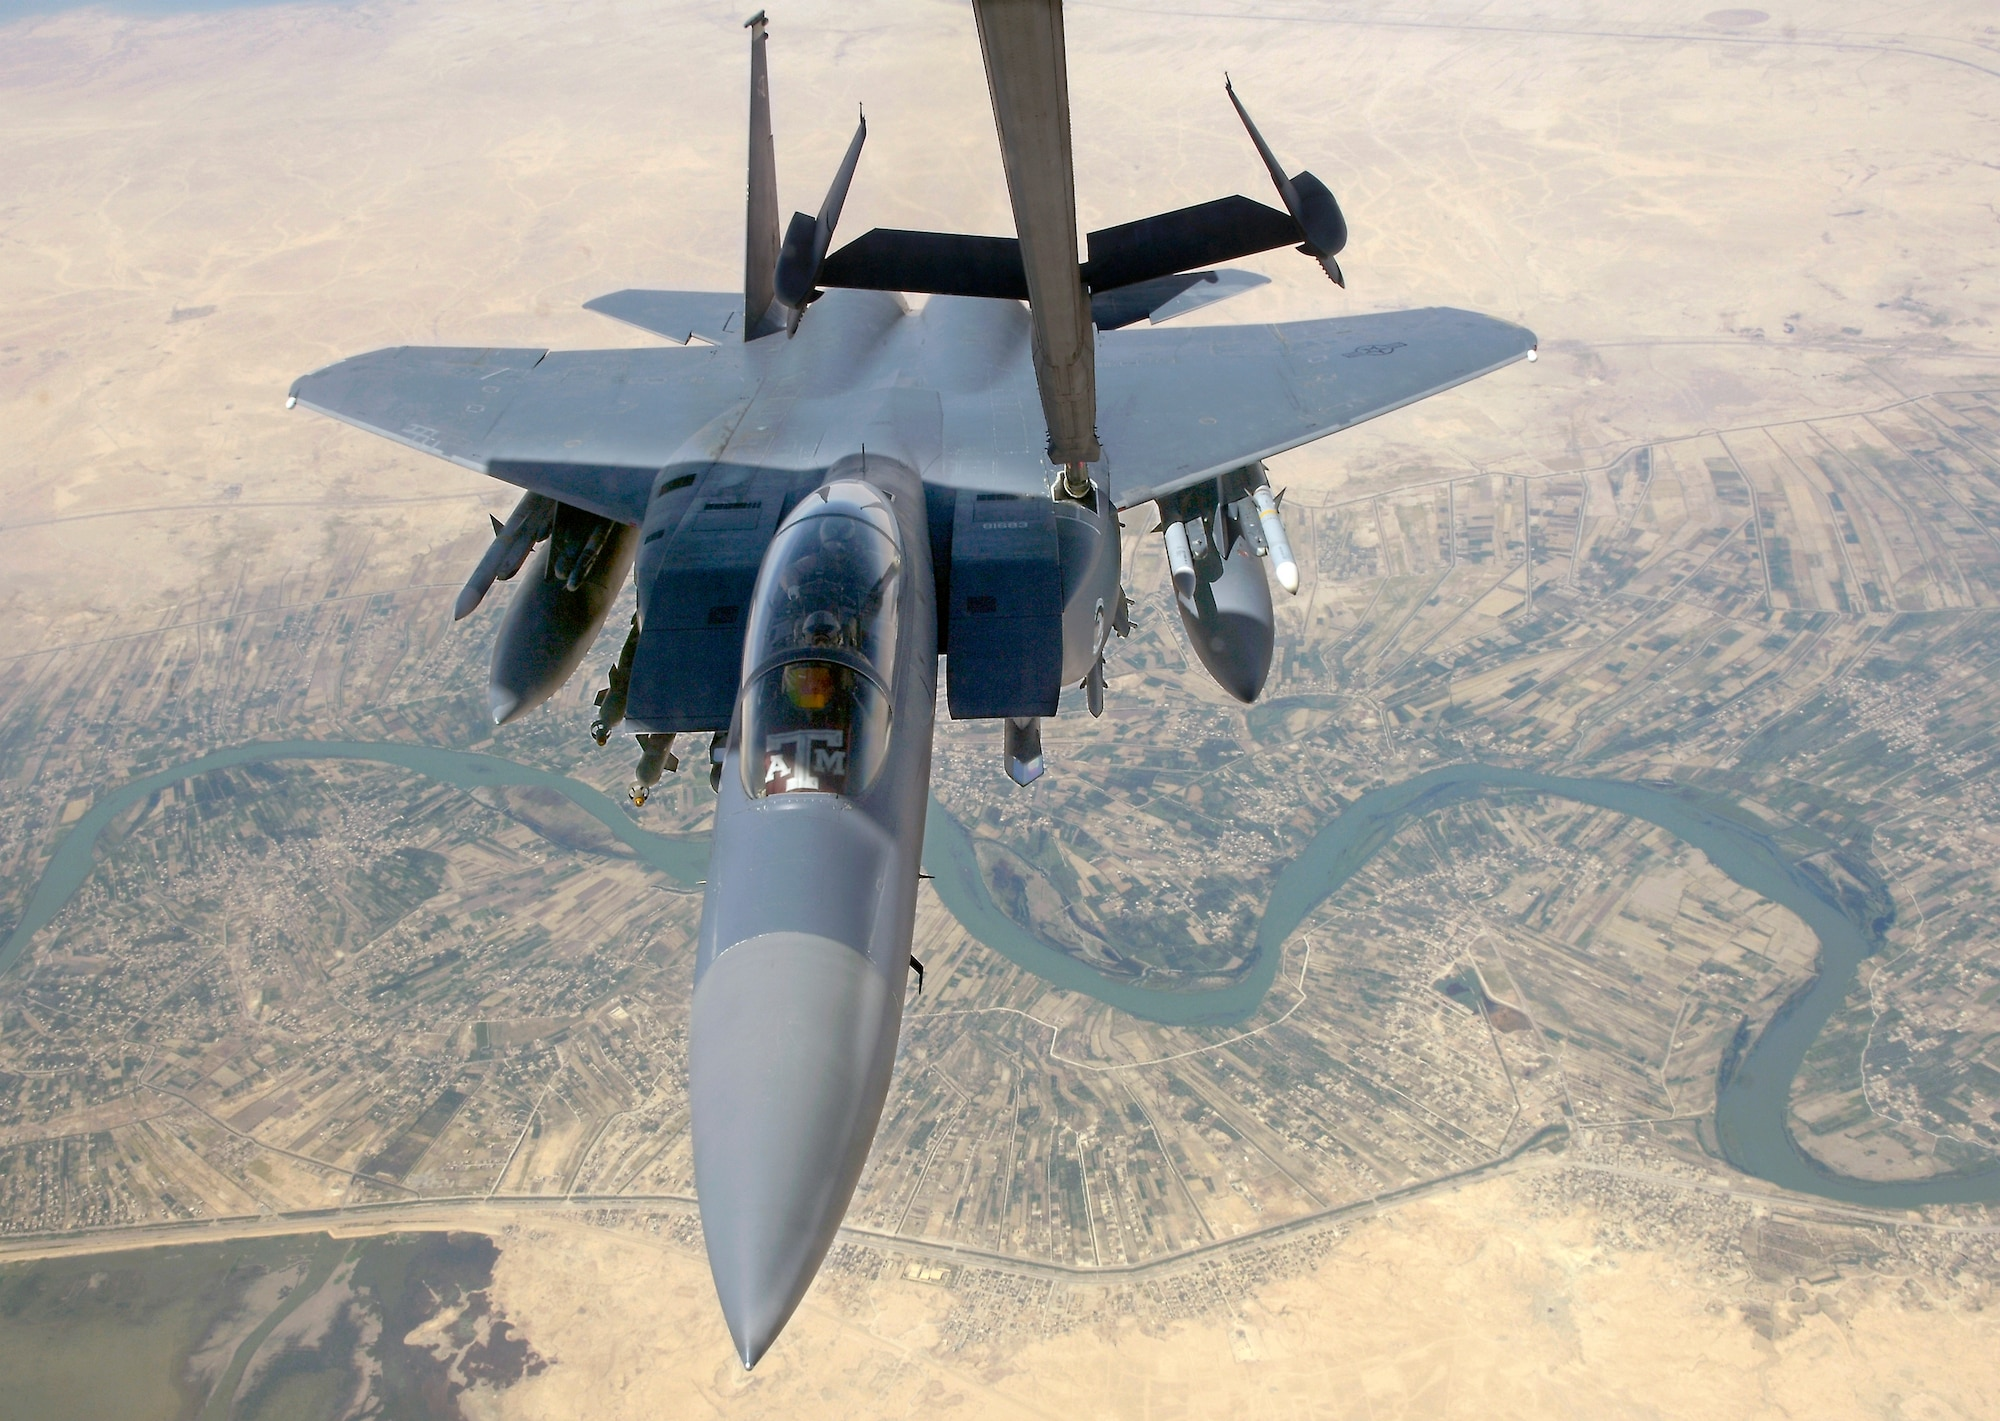 F-15E Strike Eagles, similar to this one refueling over Iraq, play a critical role daily in providing close-air support to ground forces in contact with anti-Iraqi forces as part of Operation Iraqi Freedom. (U.S. Air Force photo/Senior Airman Brian Ferguson)